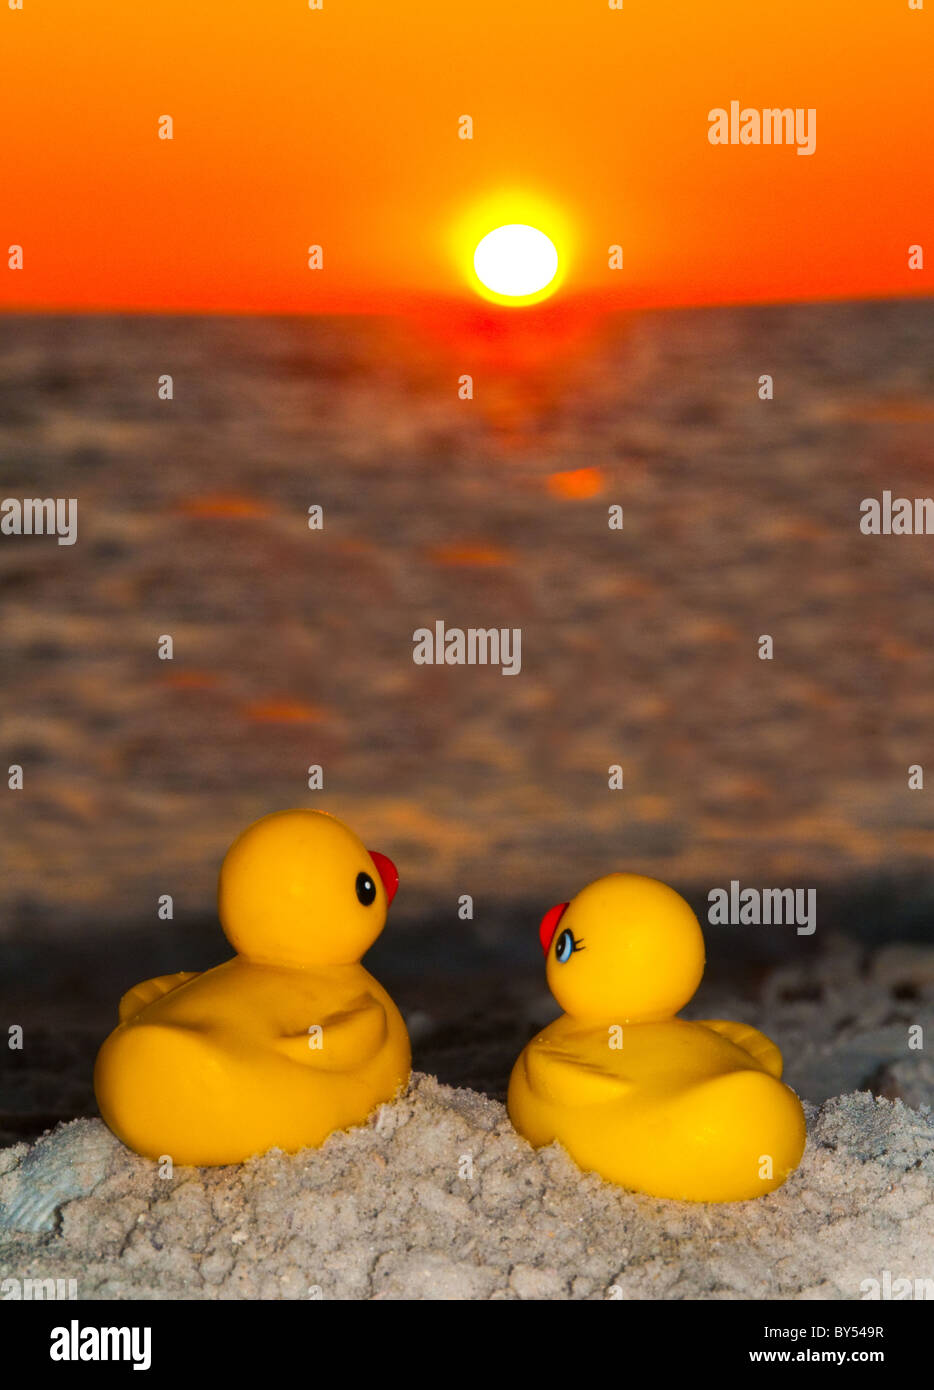 Rubber Duck Humor Stock Photos & Rubber Duck Humor Stock Images - Alamy